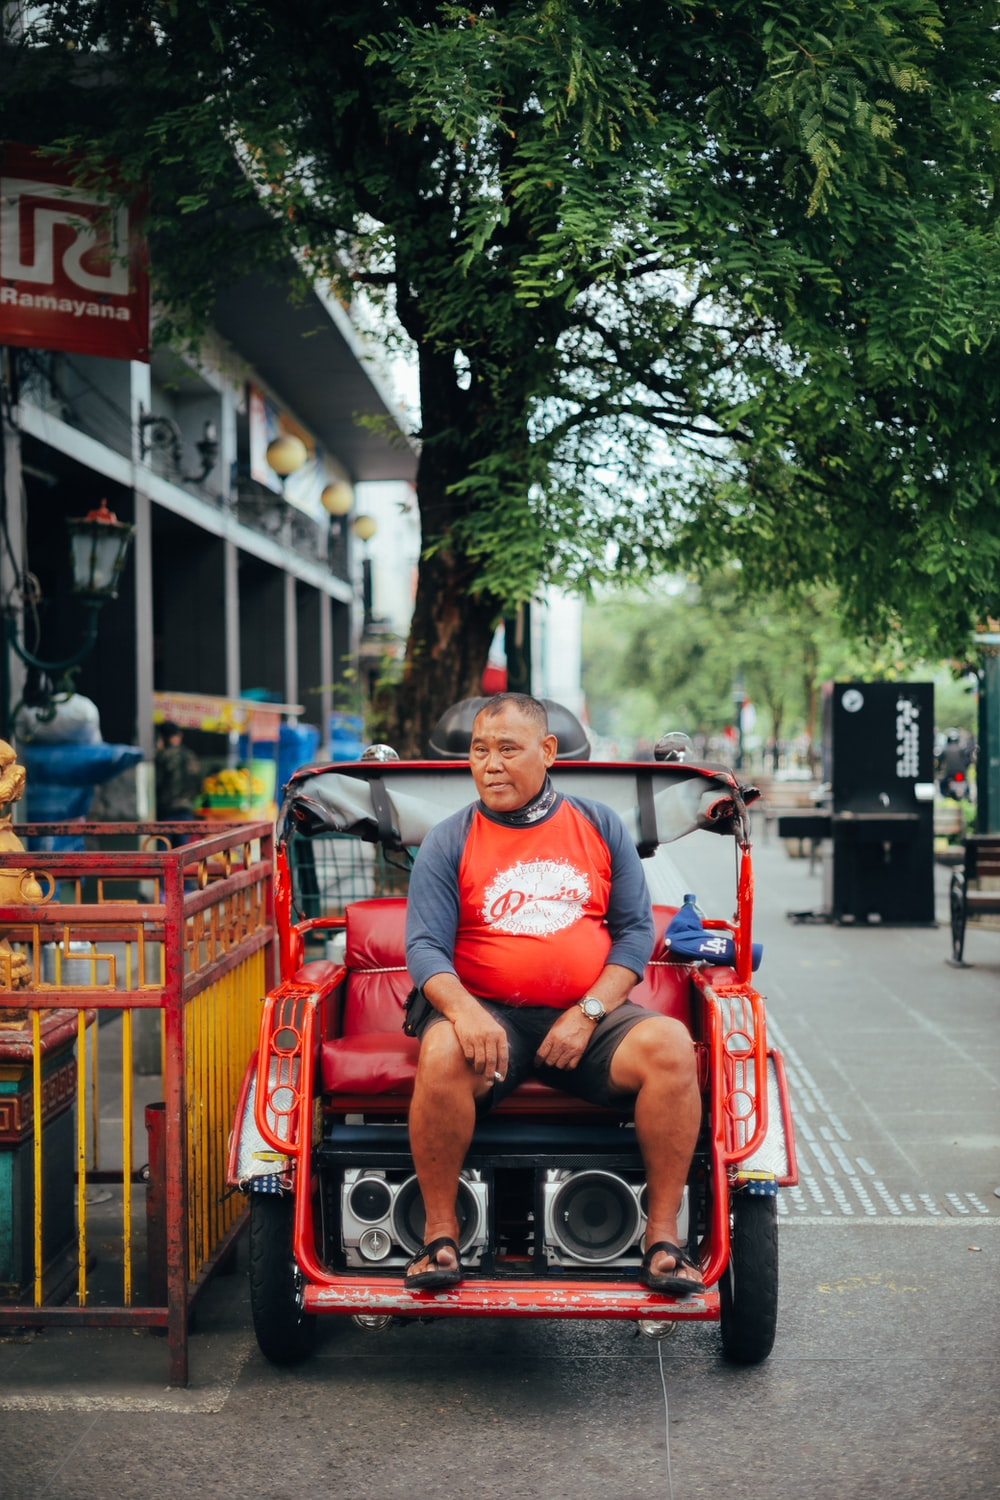 man in red crew neck t-shirt sitting on red wooden bench during daytime